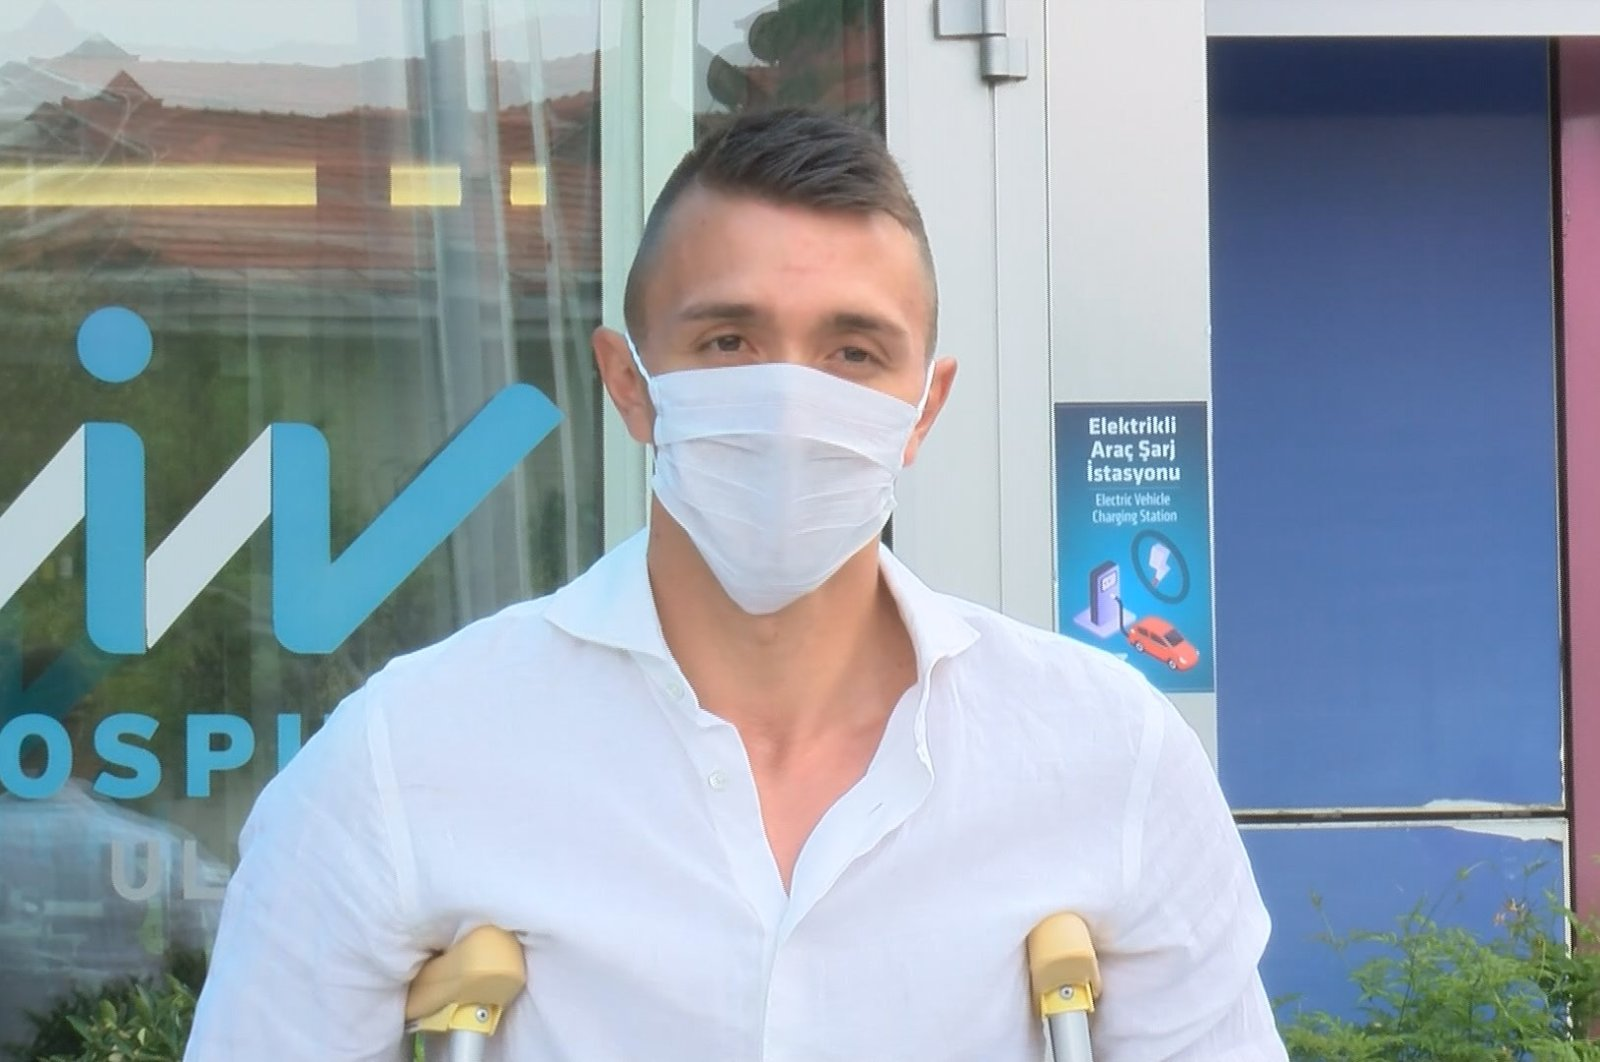 Galatasaray goalie Fernando Muslera after being discharged from the hospital in Istanbul's Ulus, June 18, 2020. (DHA Photo)